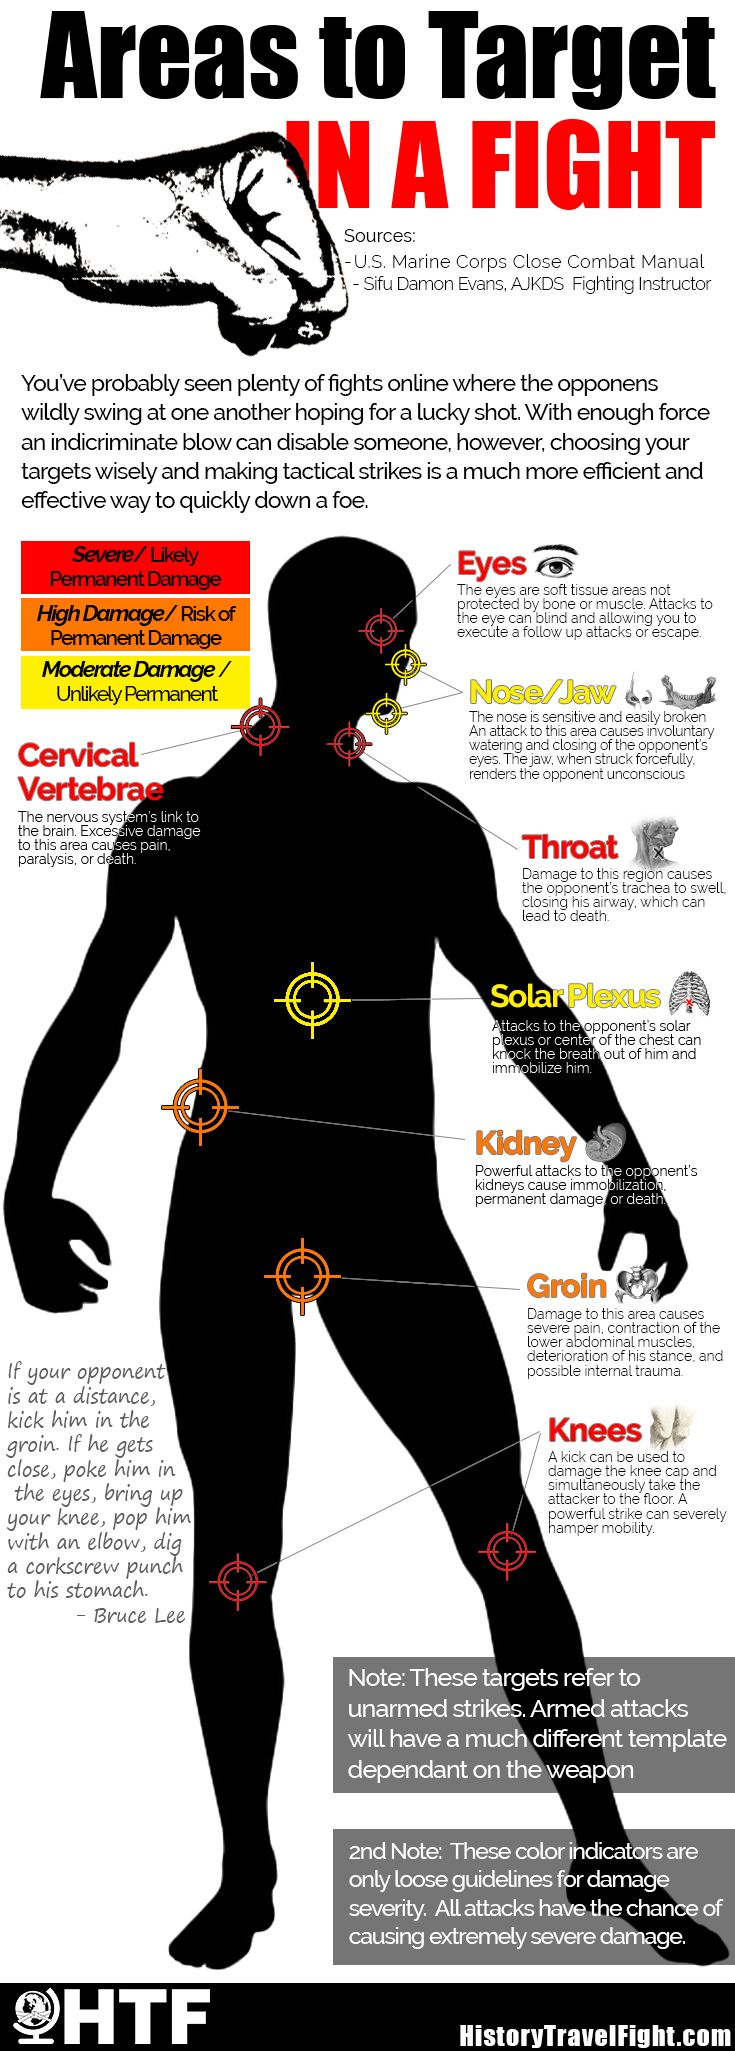 """Areas to Target With Unarmed Strikes [Infographic] """"During close combat, Marines strive to attack the accessible target areas of an opponent's body. The readily accessible areas will vary with each situation and throughout the engagement. The target areas are divided into five major groups: head, neck, torso, groin, and extremities. The figure below illustrates target areas of the body. """" #MMA #Martial Arts #Self #Defense #Fight"""